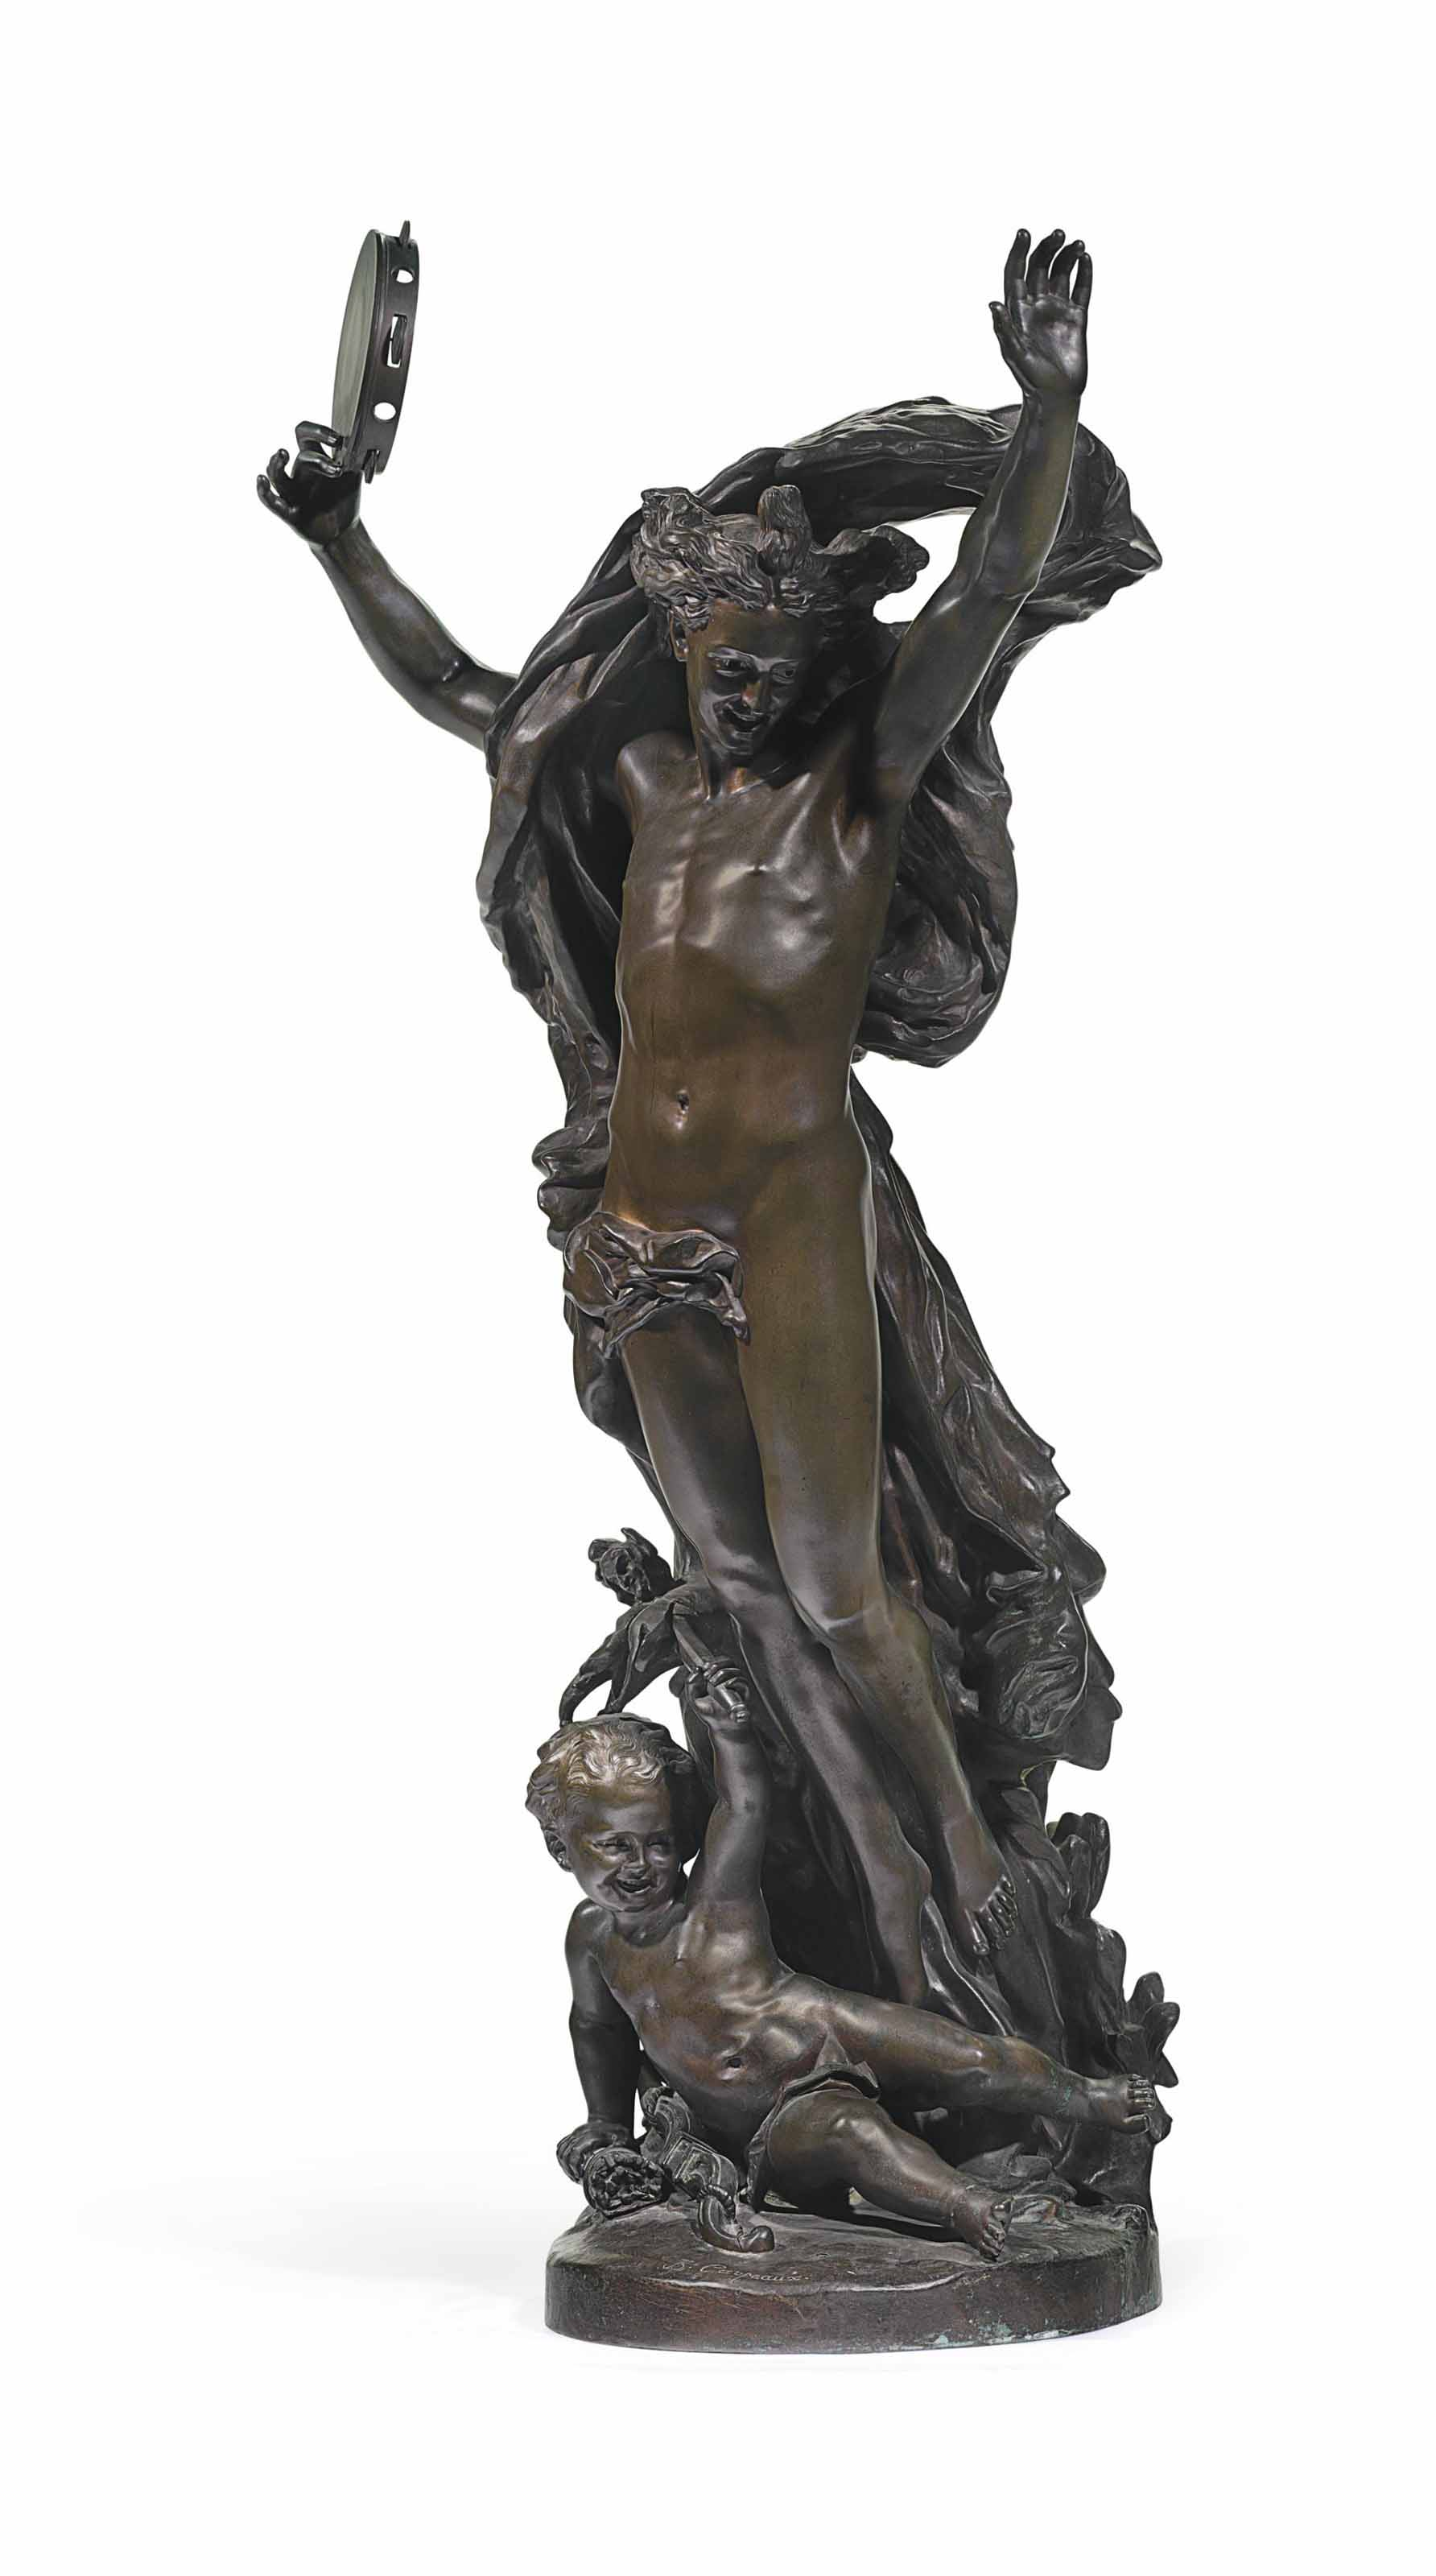 A FRENCH PATINATED BRONZE GROUP, ENTITLED 'LE GENIE DE LA DANSE'